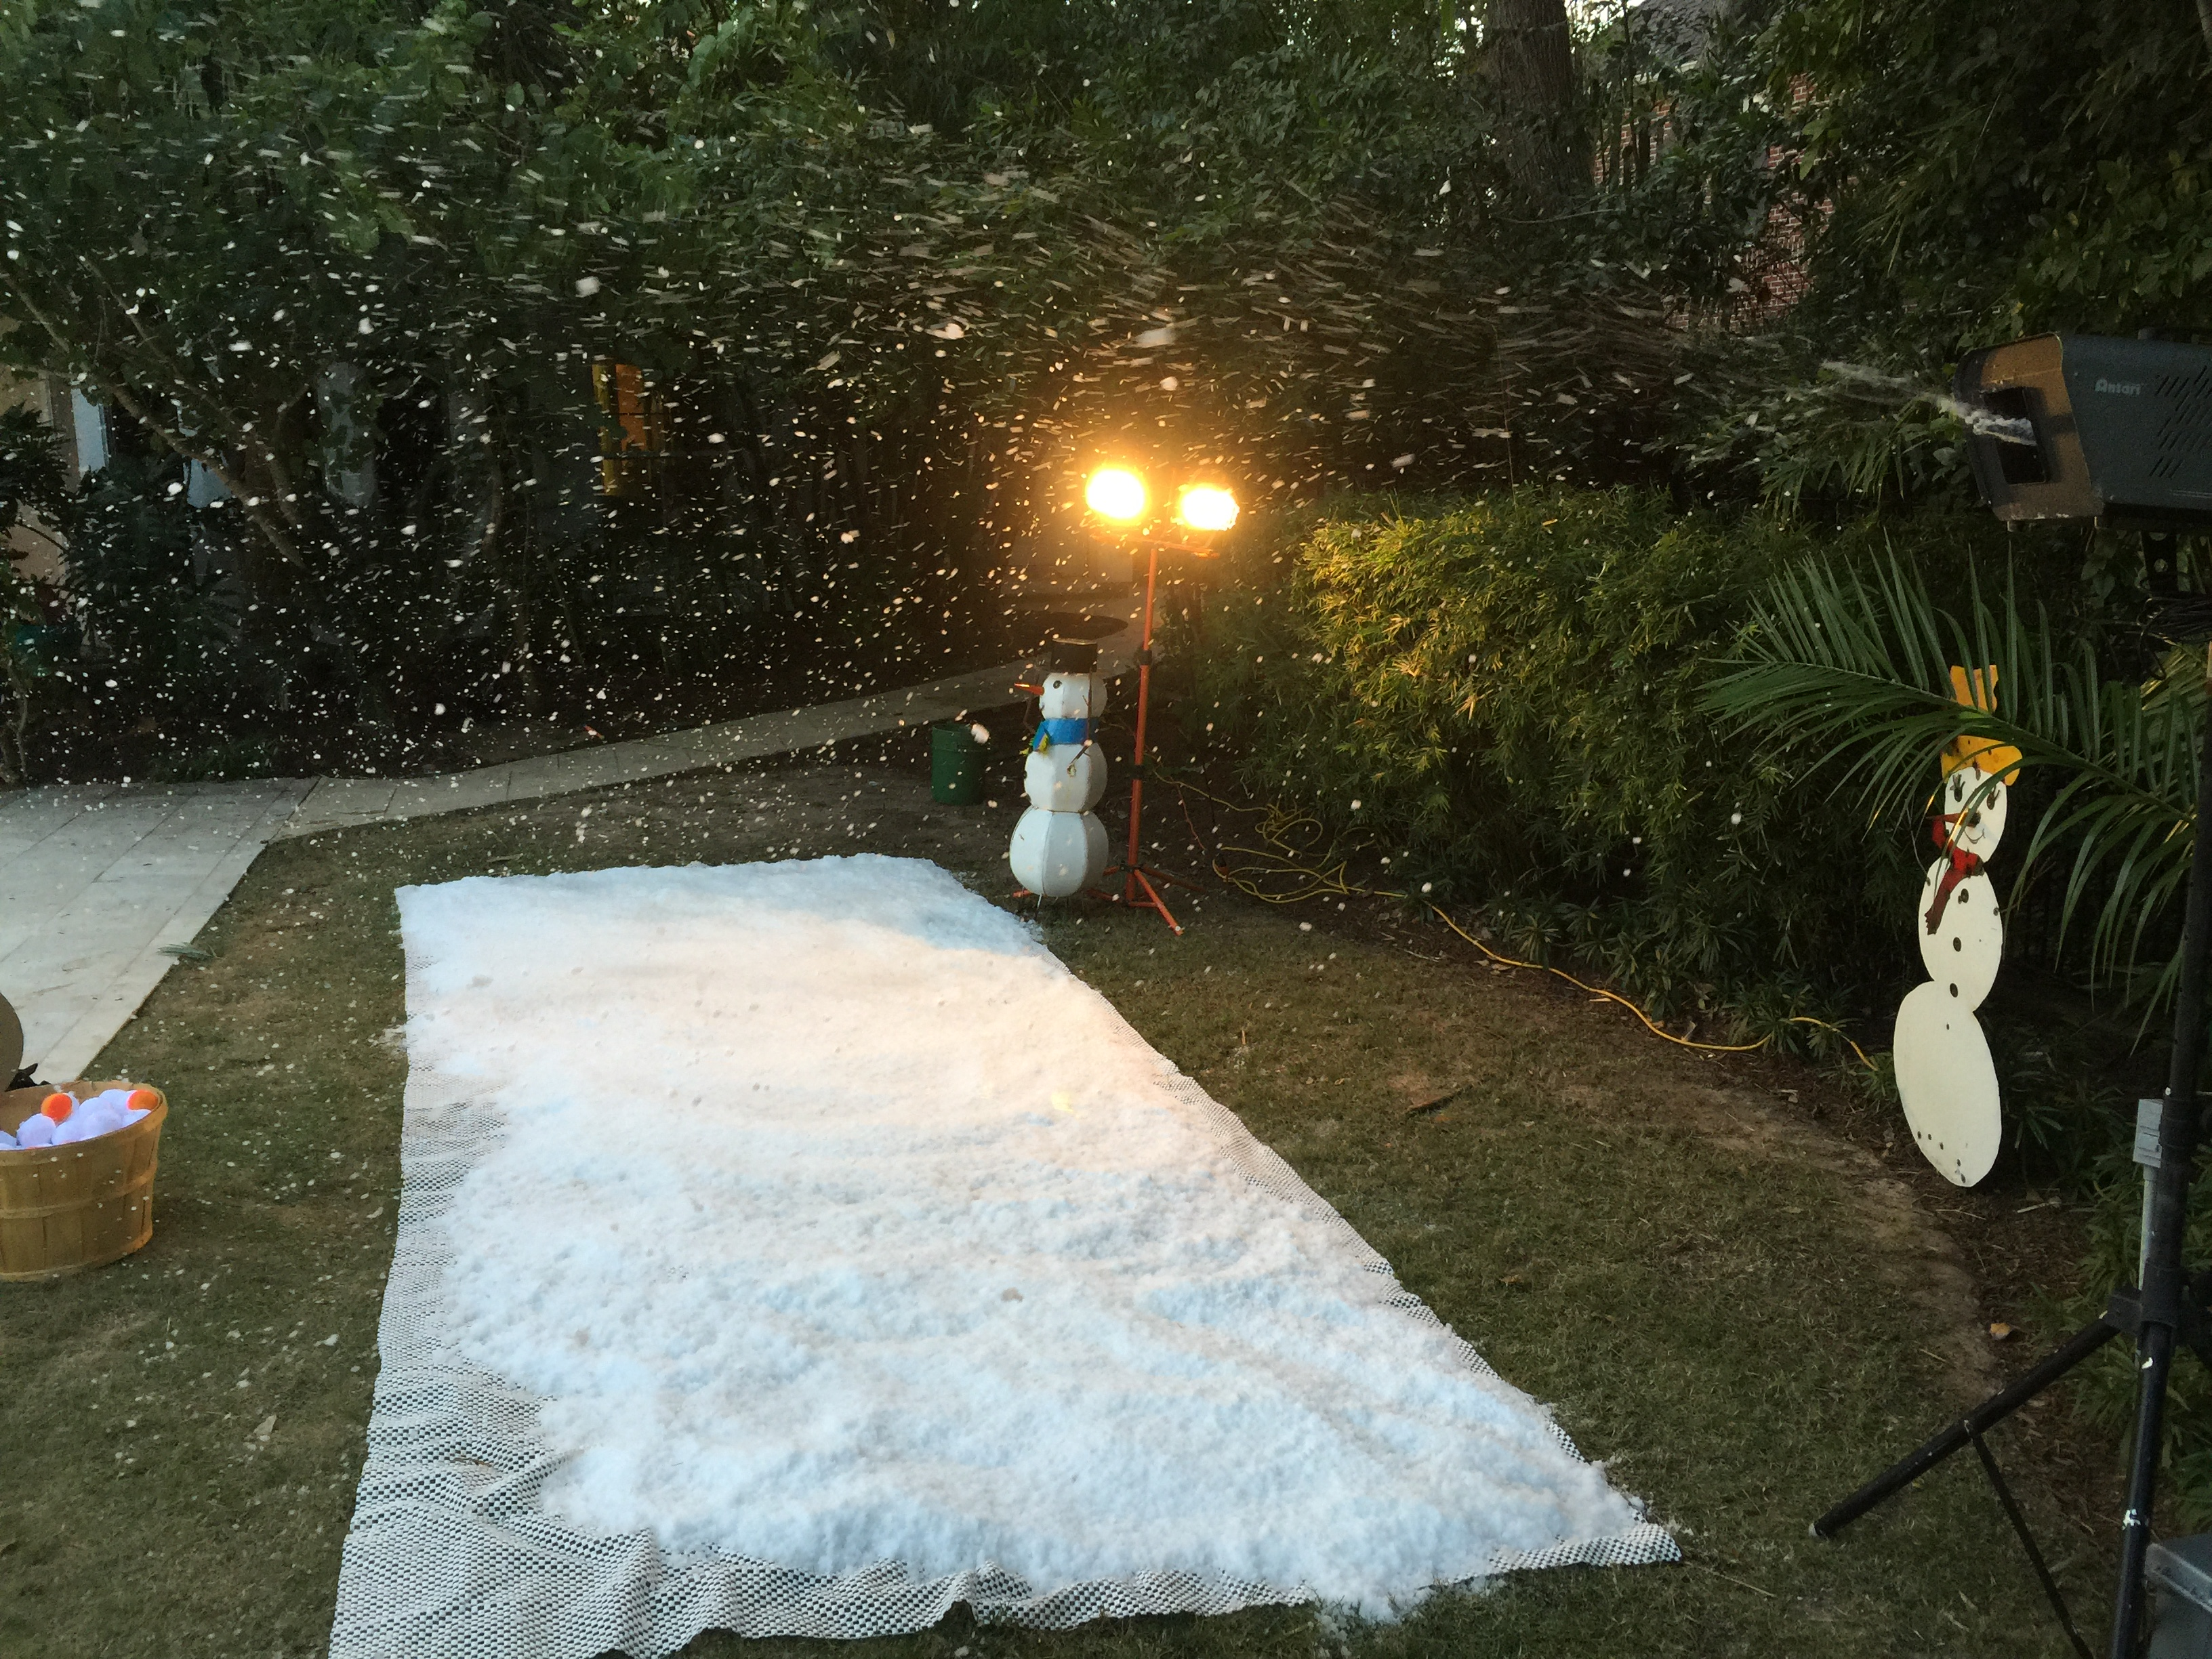 Entertainment fun parties occasions buy fake snow make